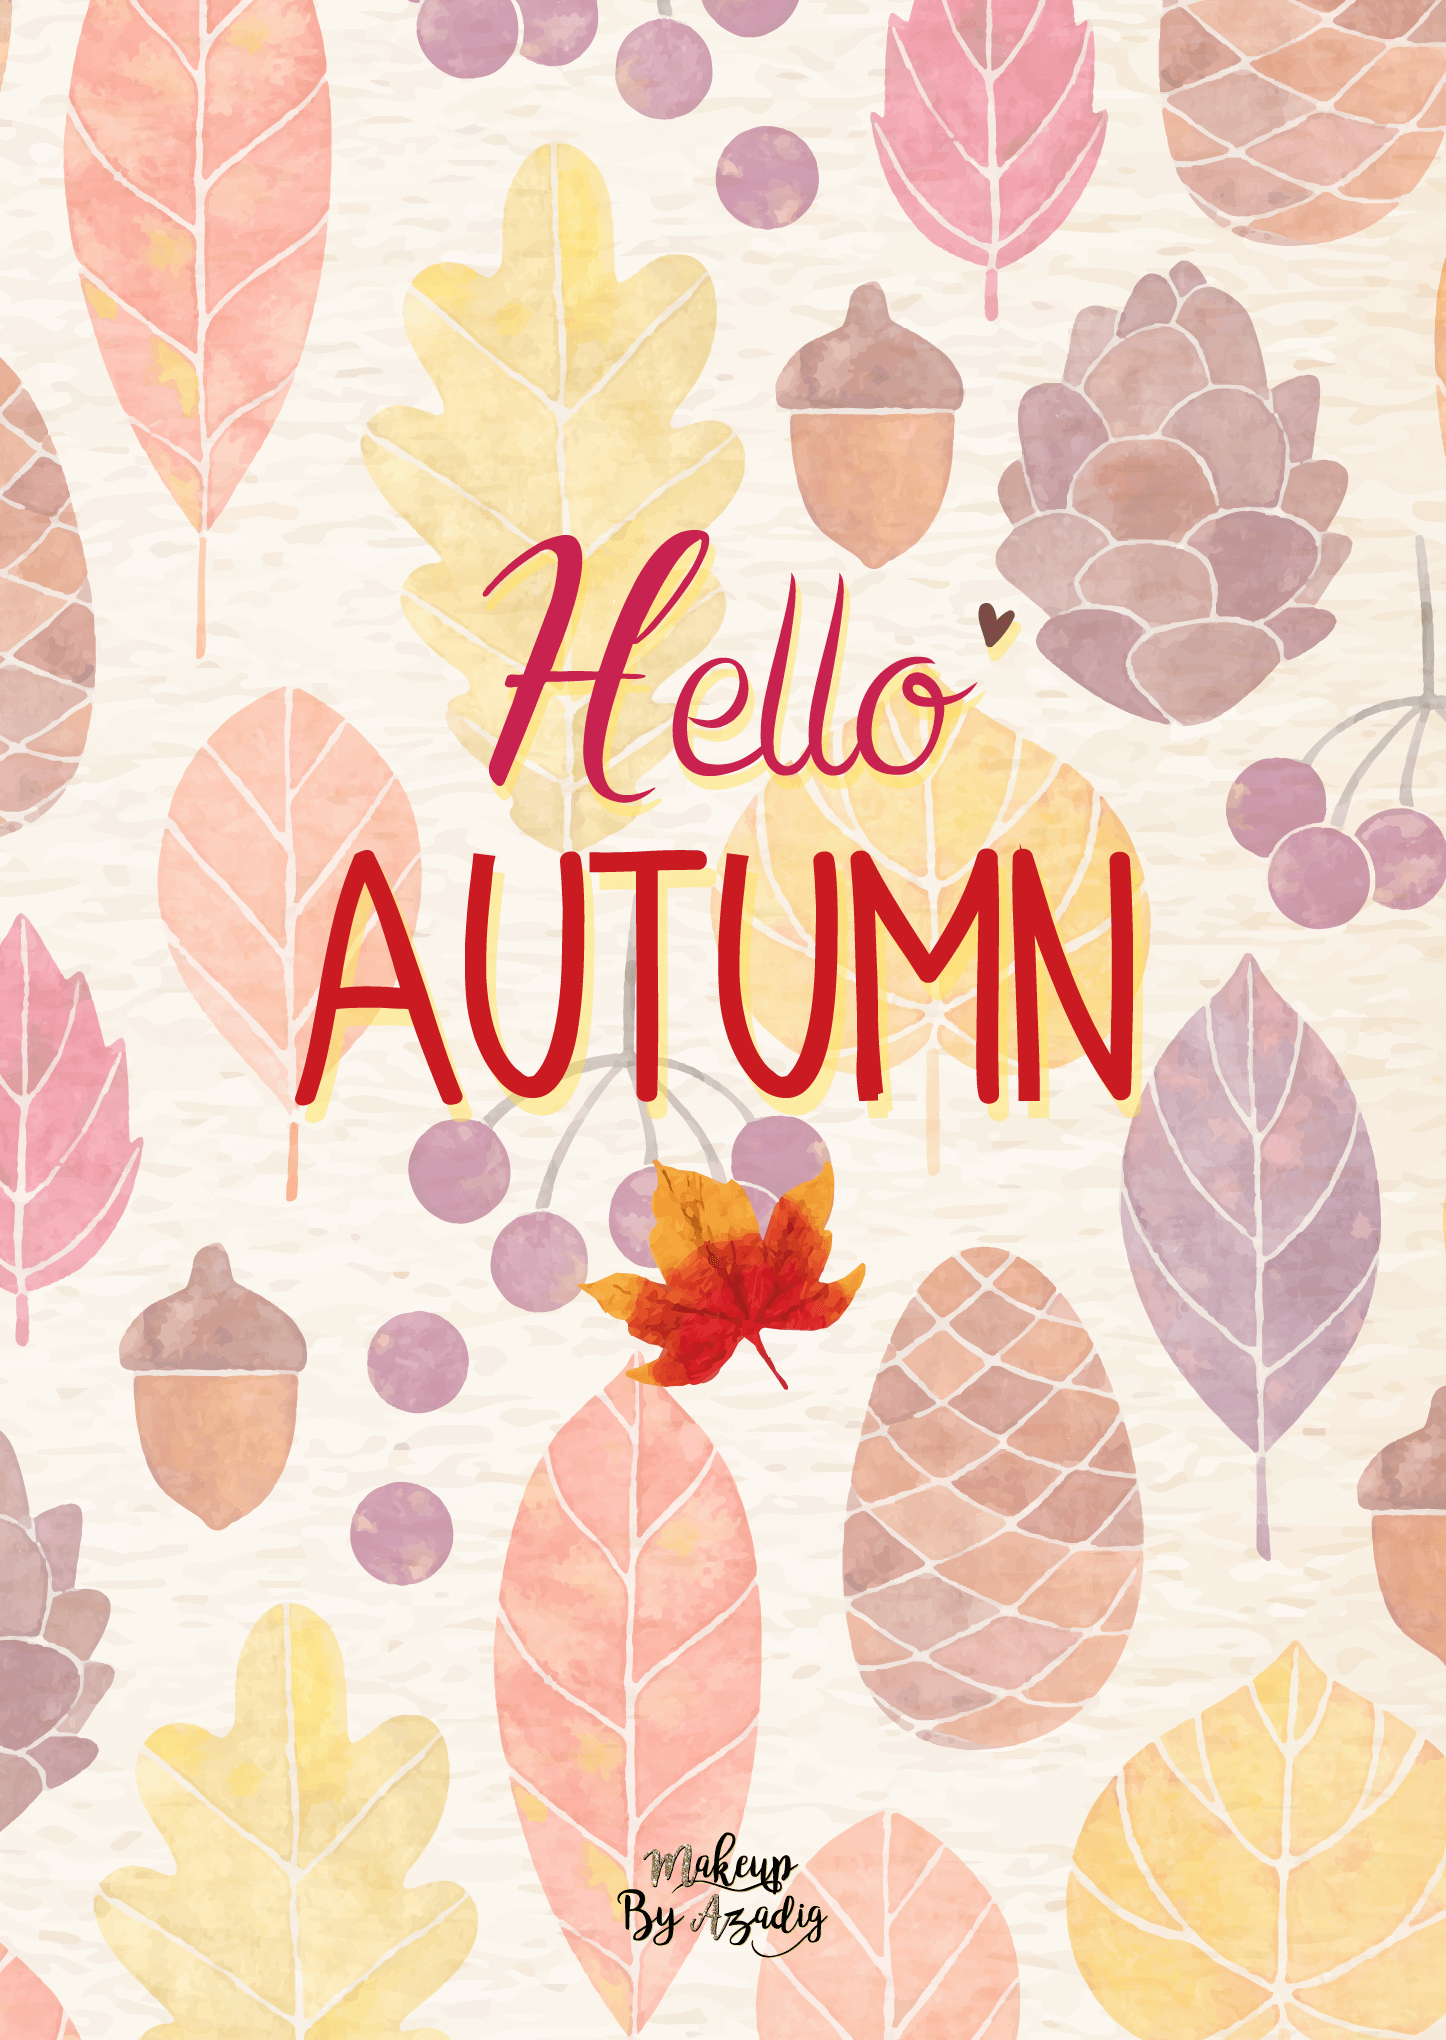 fond-decran-wallpaper-hello-autumn-automne-ipad-tablette-apple-makeupbyazadig-tendance